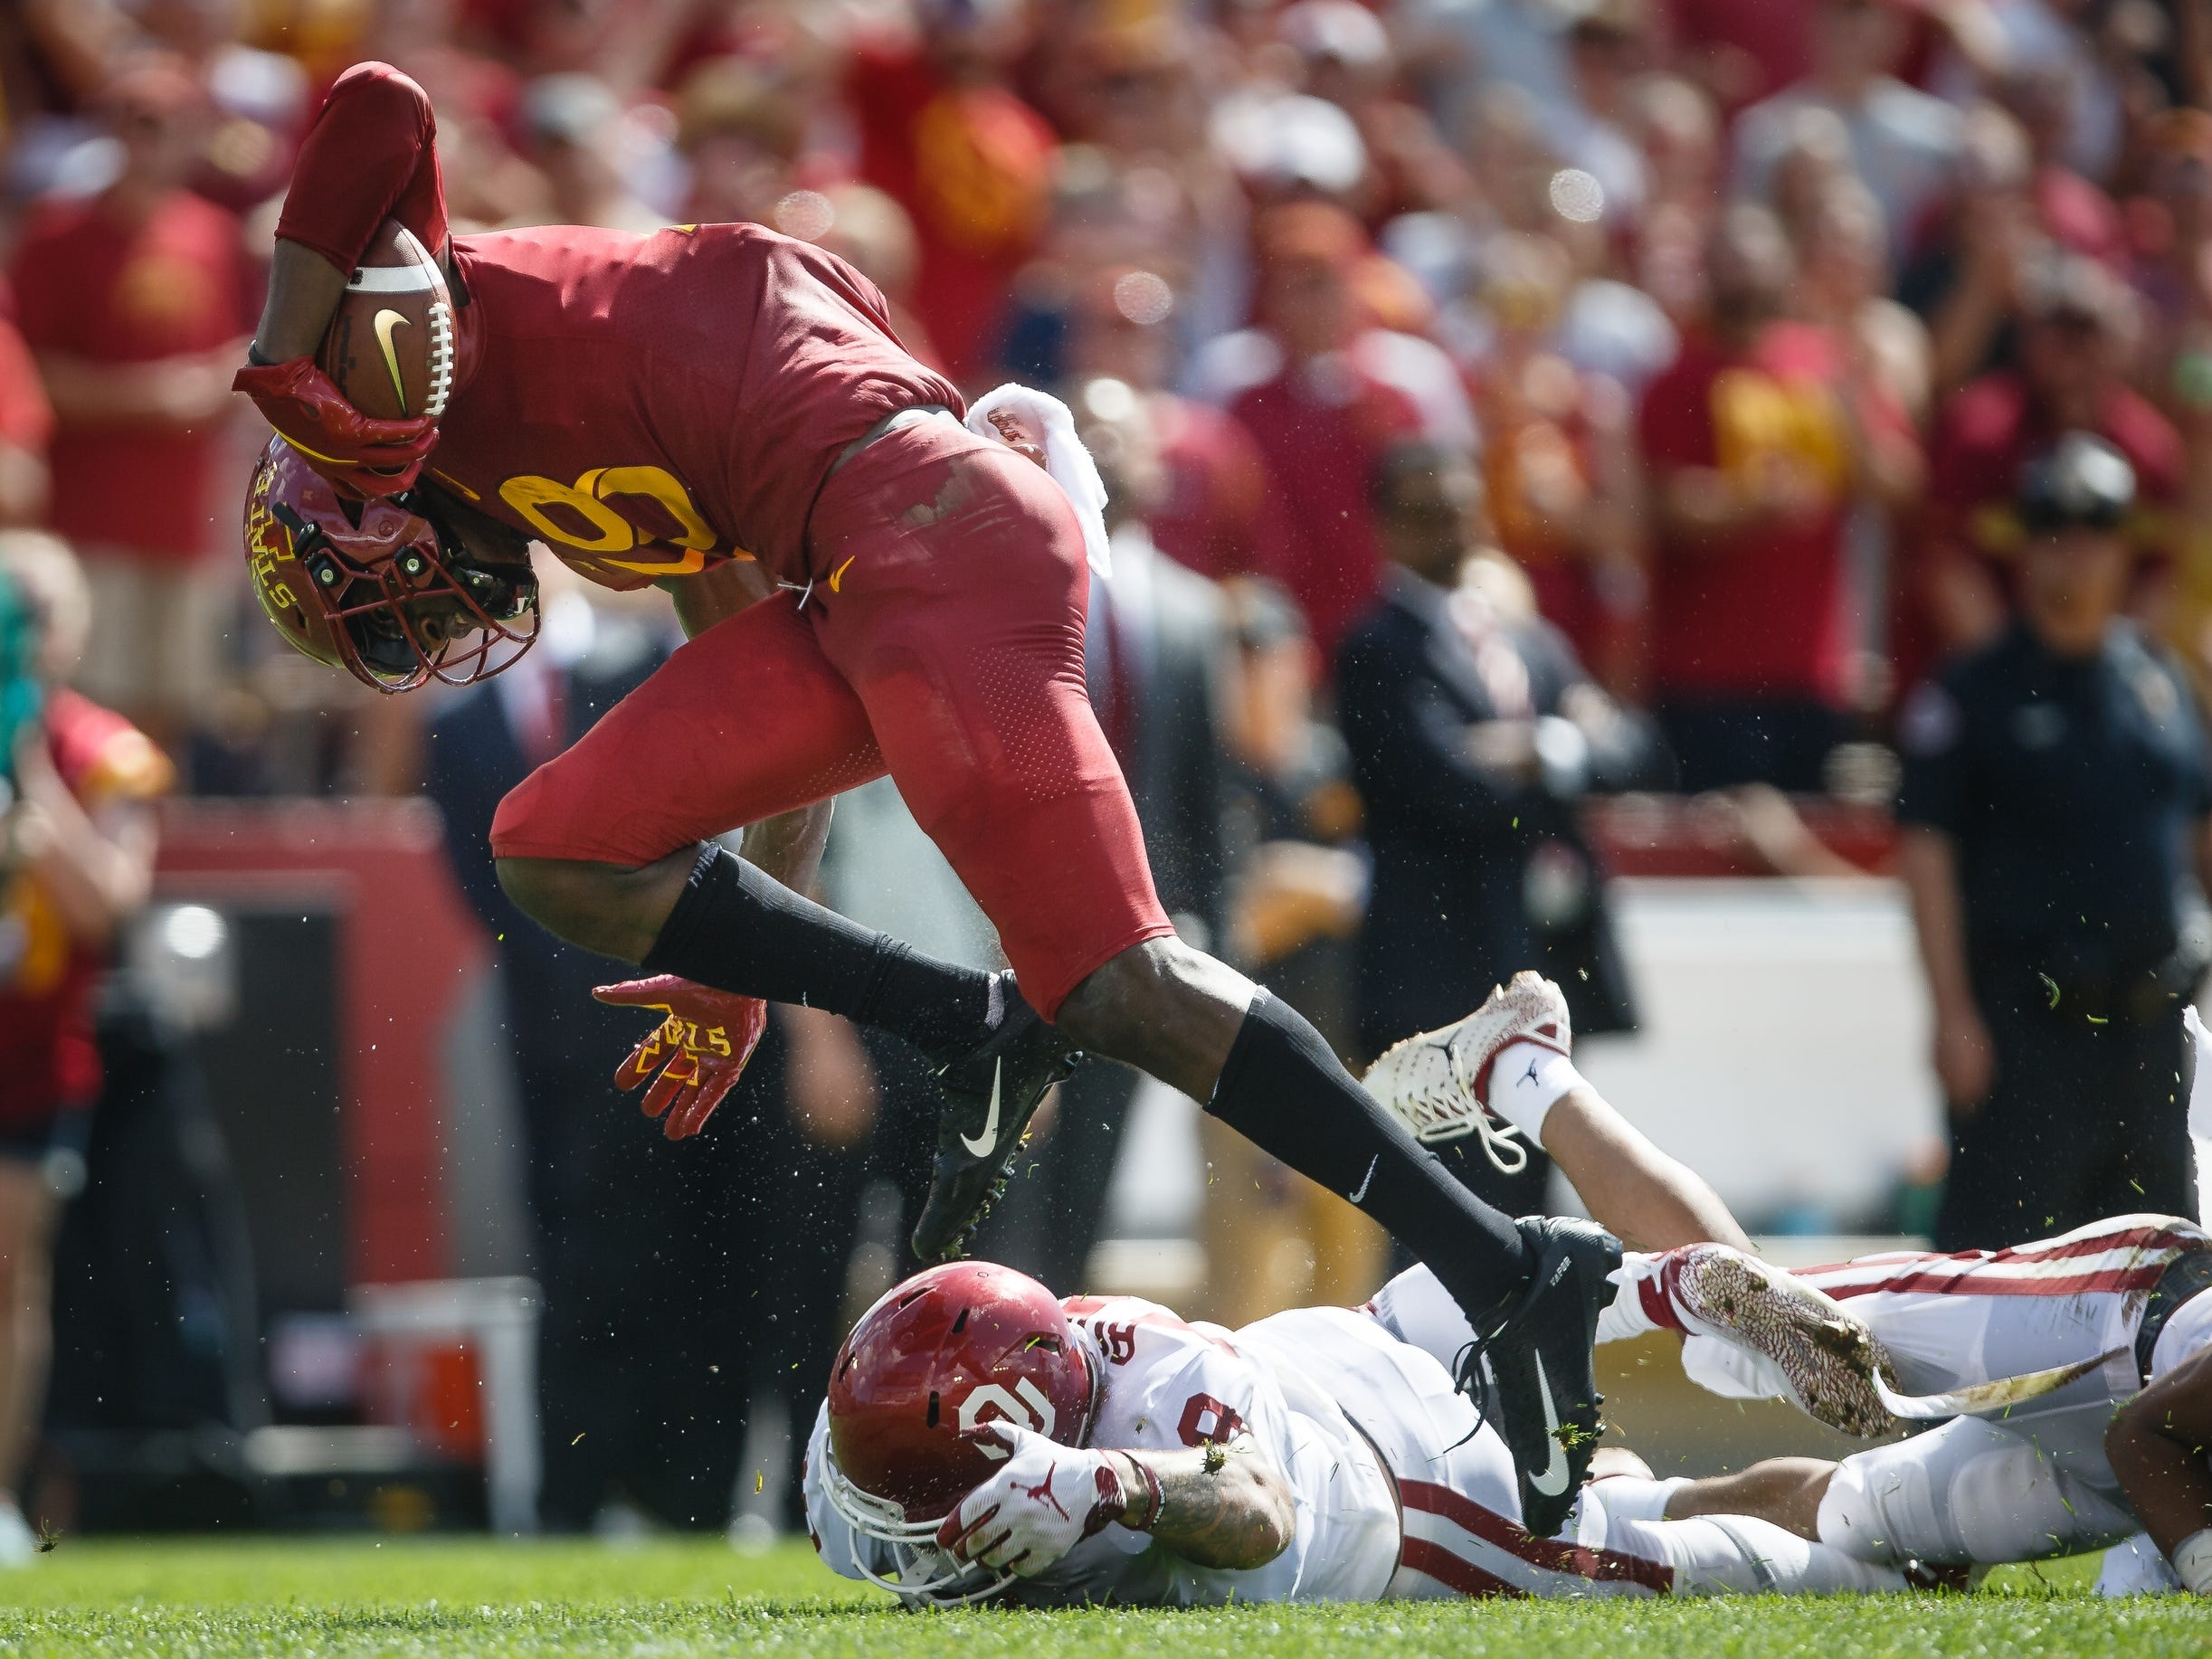 Iowa State's Hakeem Butler (18) breaks a tackle on his way to scoring a touchdown to tie the game at 10 during their football game against Oklahoma at Jack Trice Stadium on Saturday, Sept. 15, 2018 in Ames. Oklahoma takes a 24-10 lead into halftime.